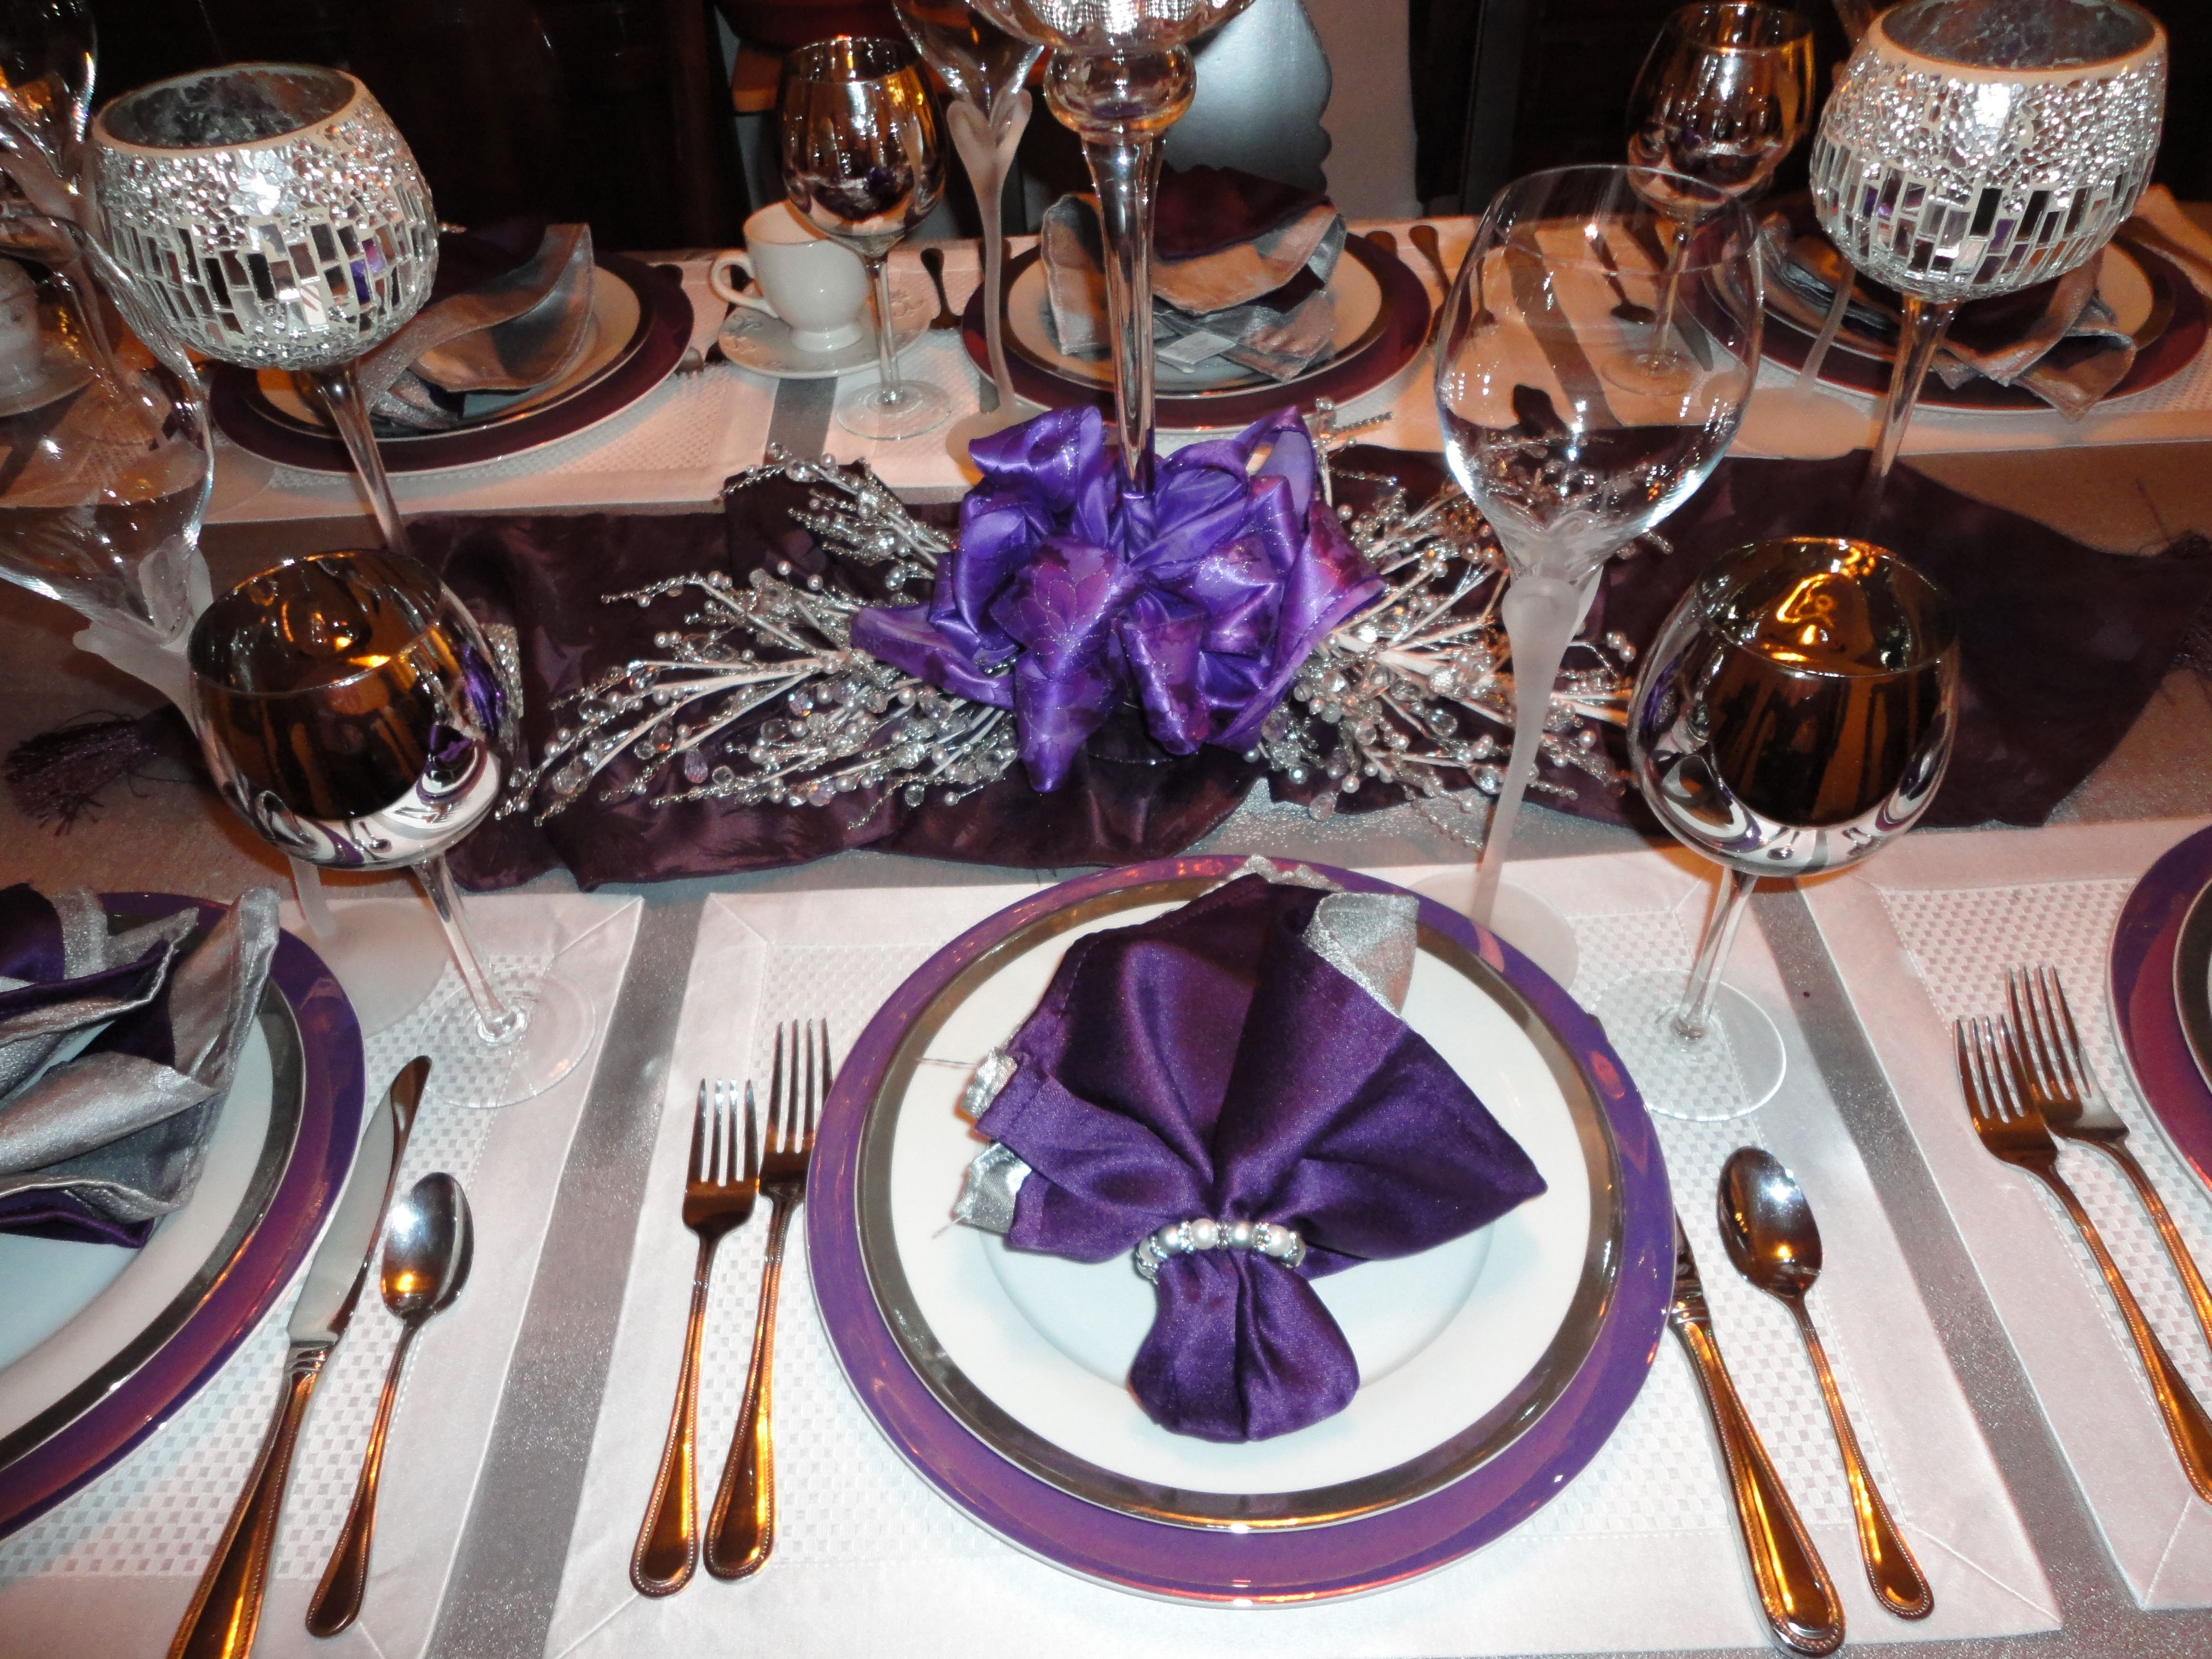 Purple charger, White plate, and purple napkin place setting. Silver ...